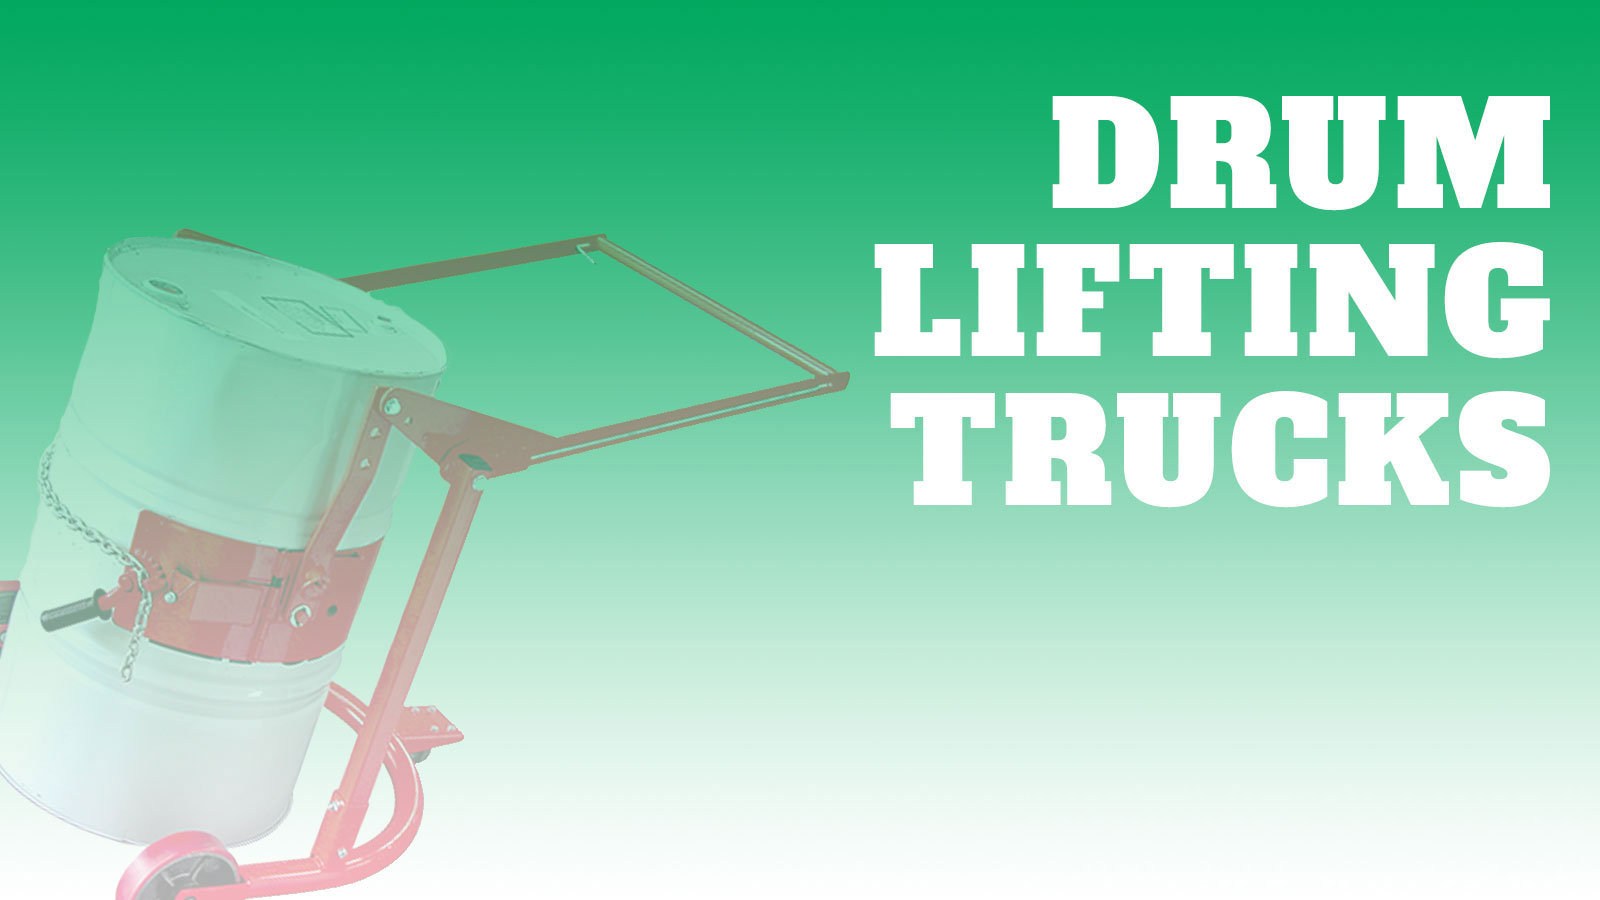 DrumHandling-Lifting